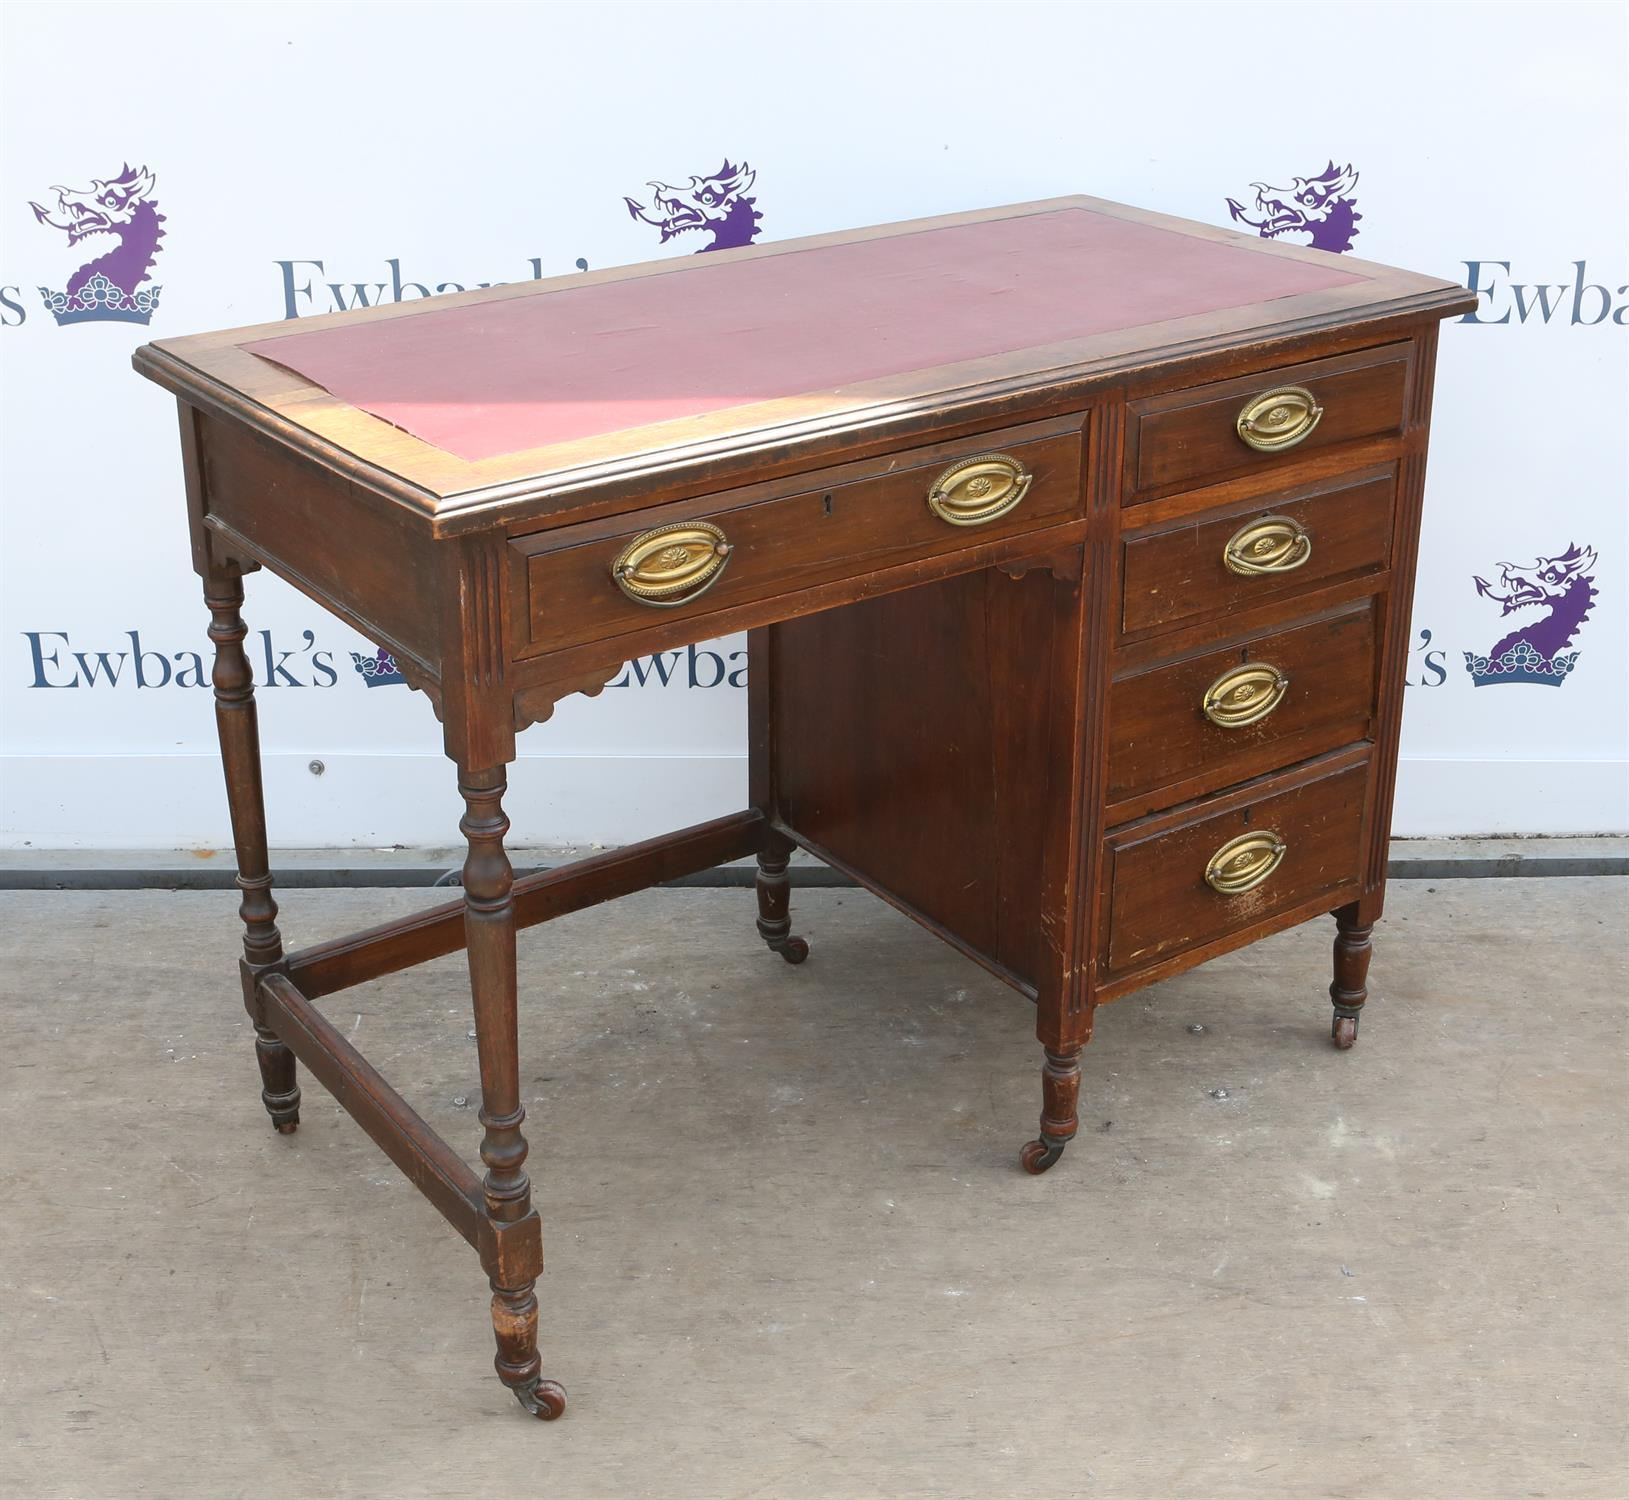 Early 20th century Maple & Co walnut desk, with five drawers on turned supports, H74 x W99 x D51cm - Image 2 of 2